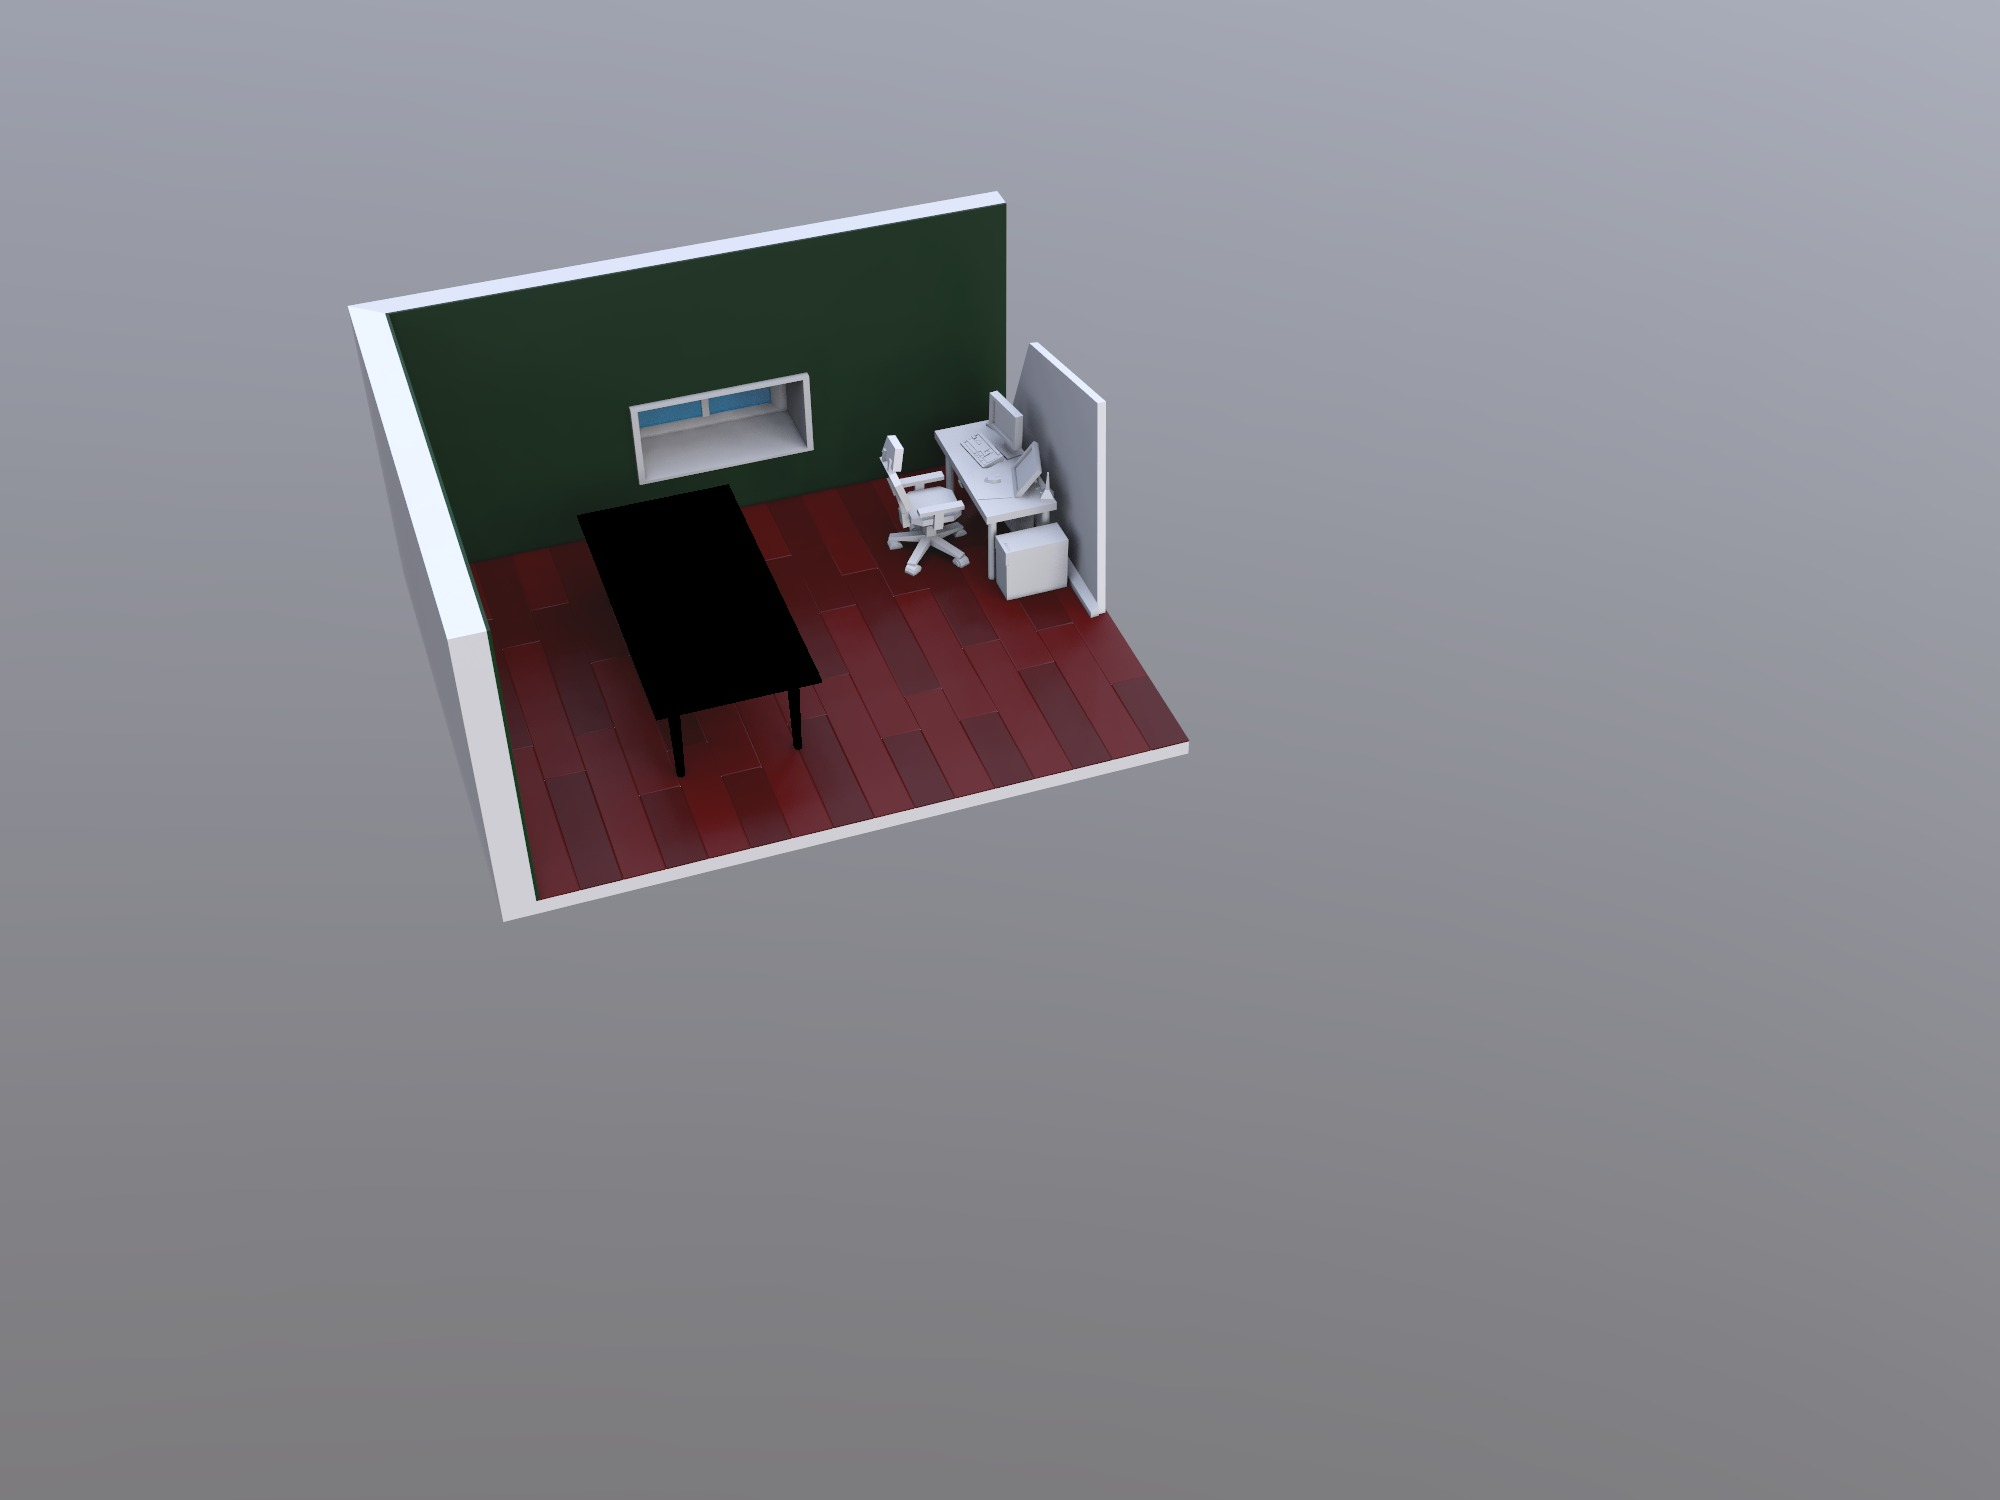 Office - 3D design by Jesse Kornaga on Dec 11, 2018